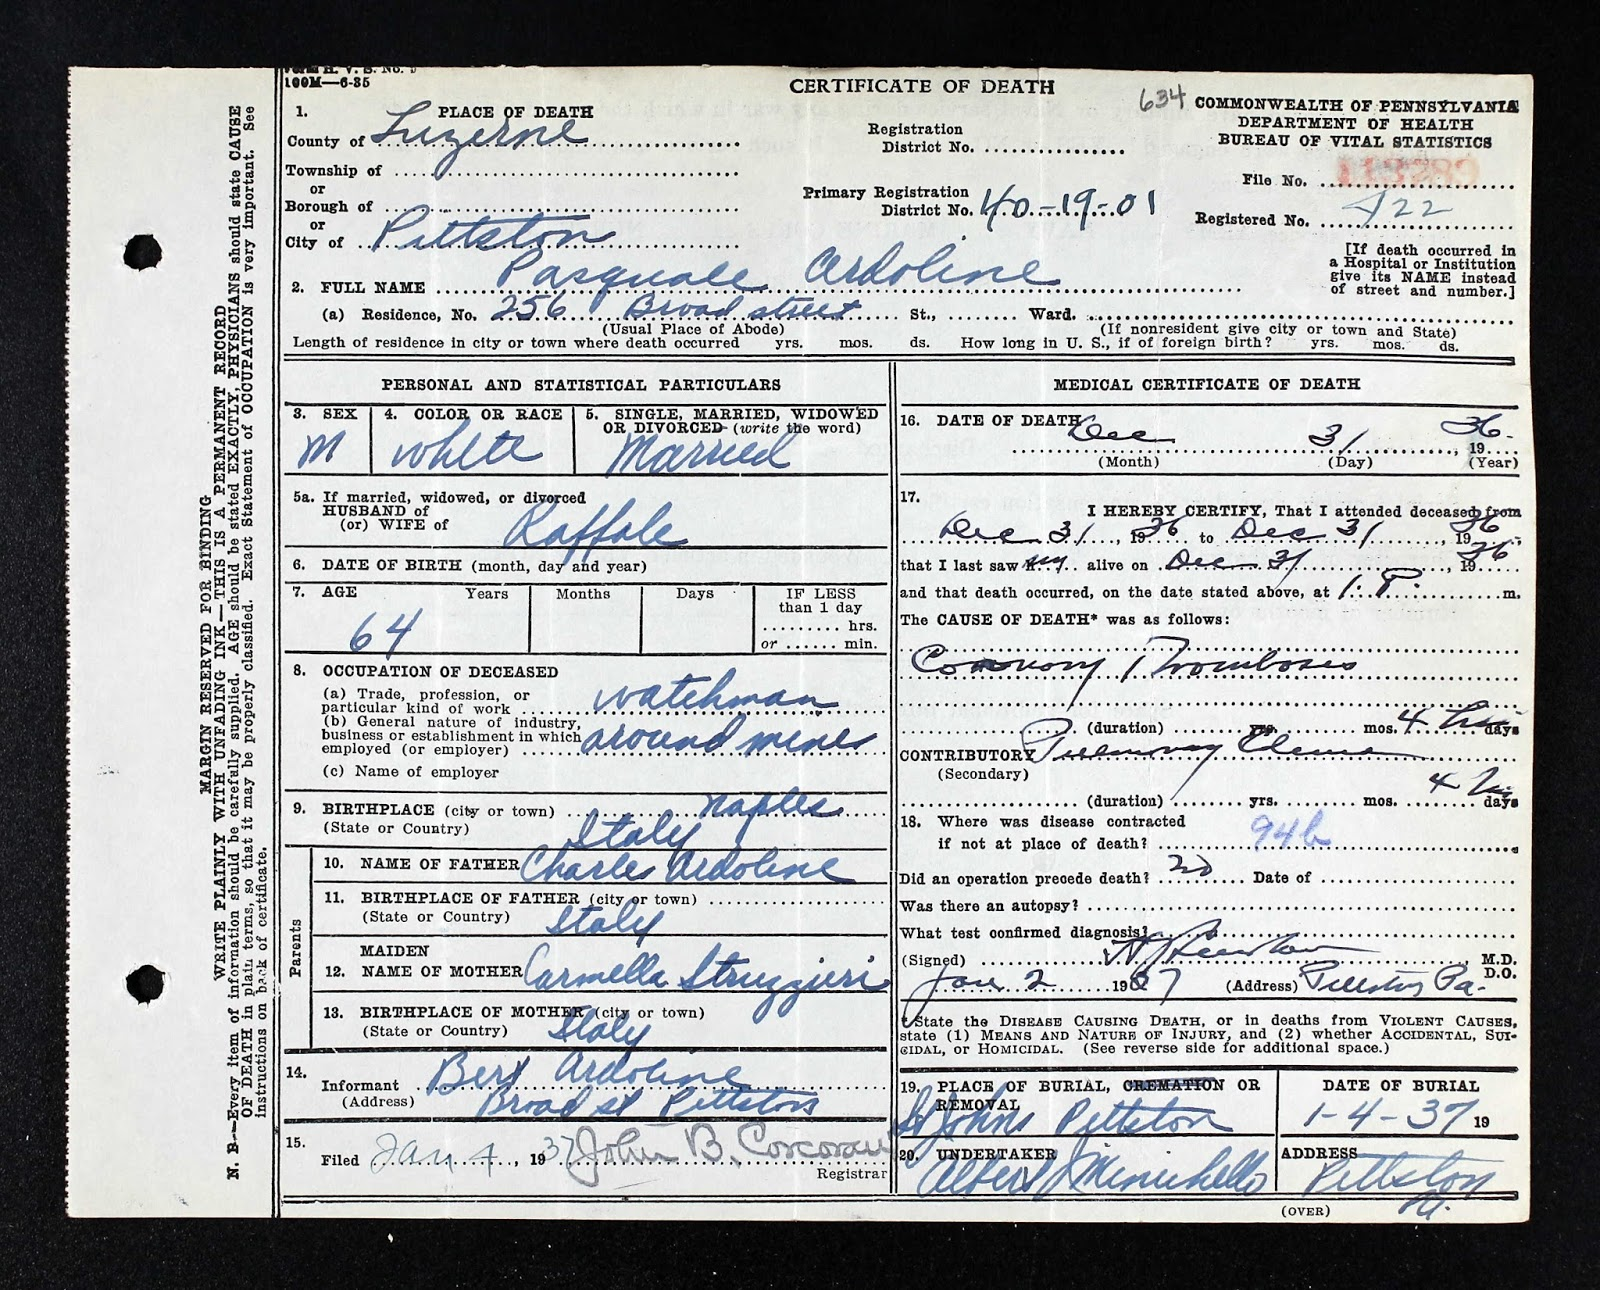 The genealogy of torre le nocelle italy 1936 pittston pa death 1936 pittston pa death of pasquale ardolino pennsylvania death certificate xflitez Gallery